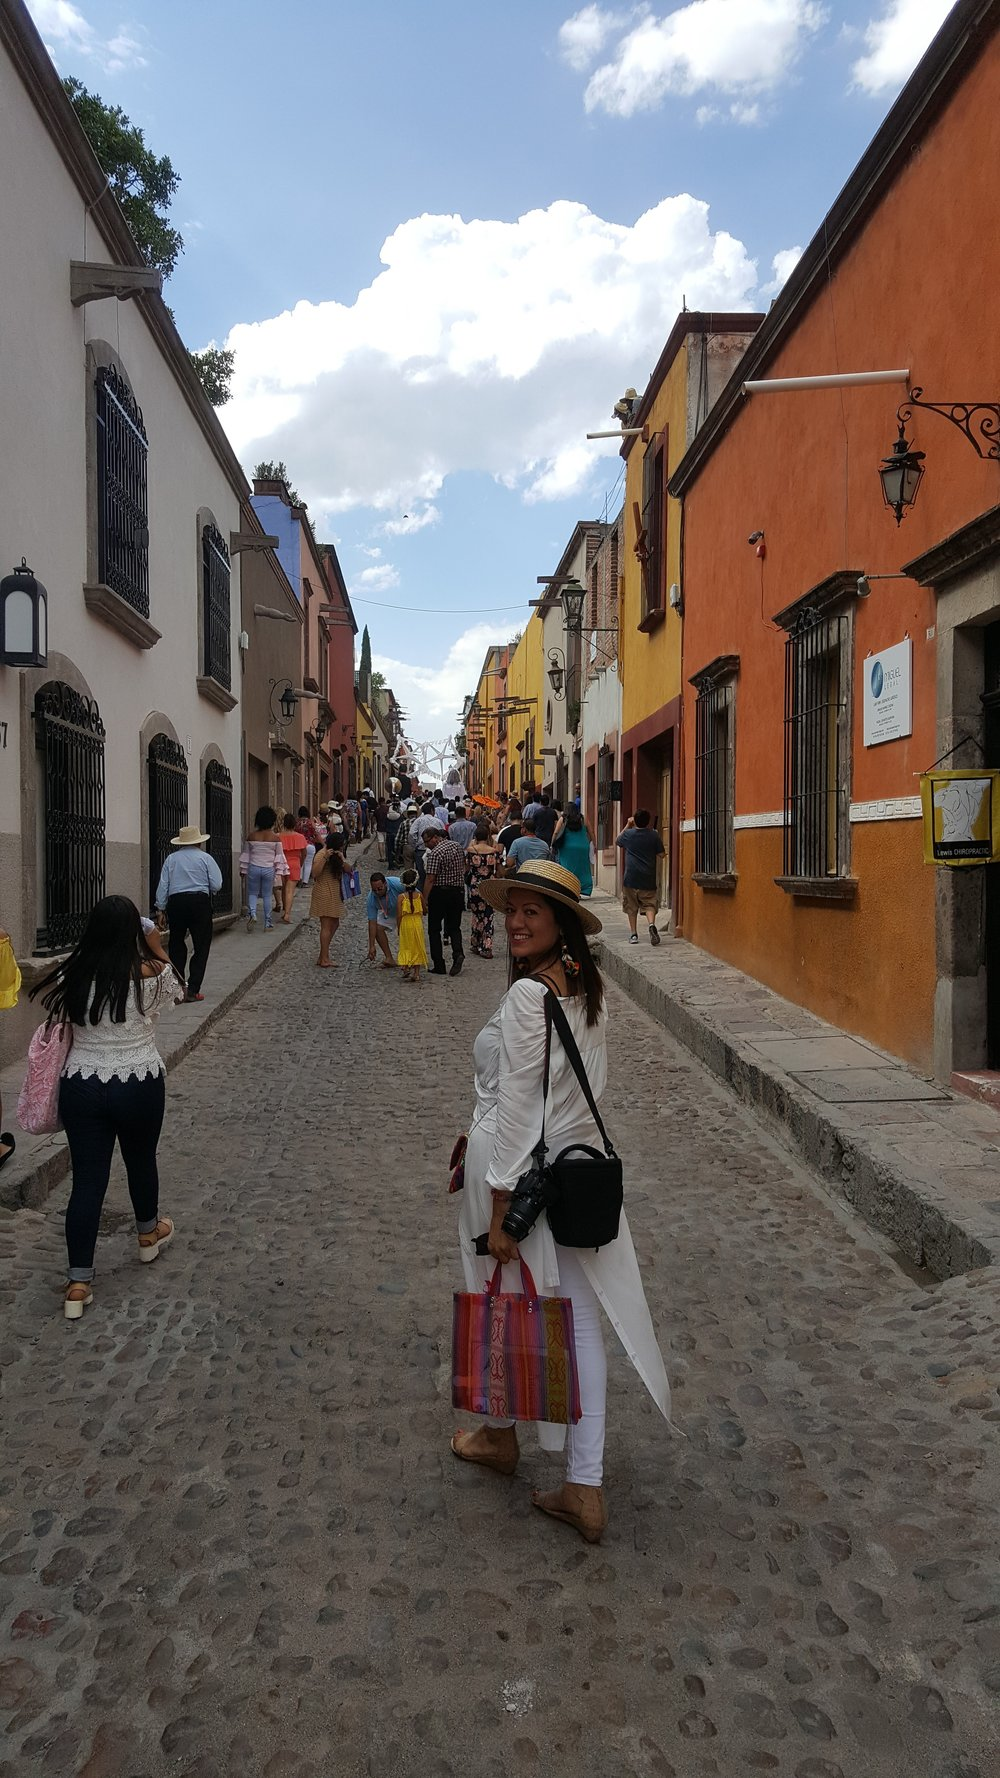 Happiest when traveling! San Miguel de Allende last summer in Mexico.